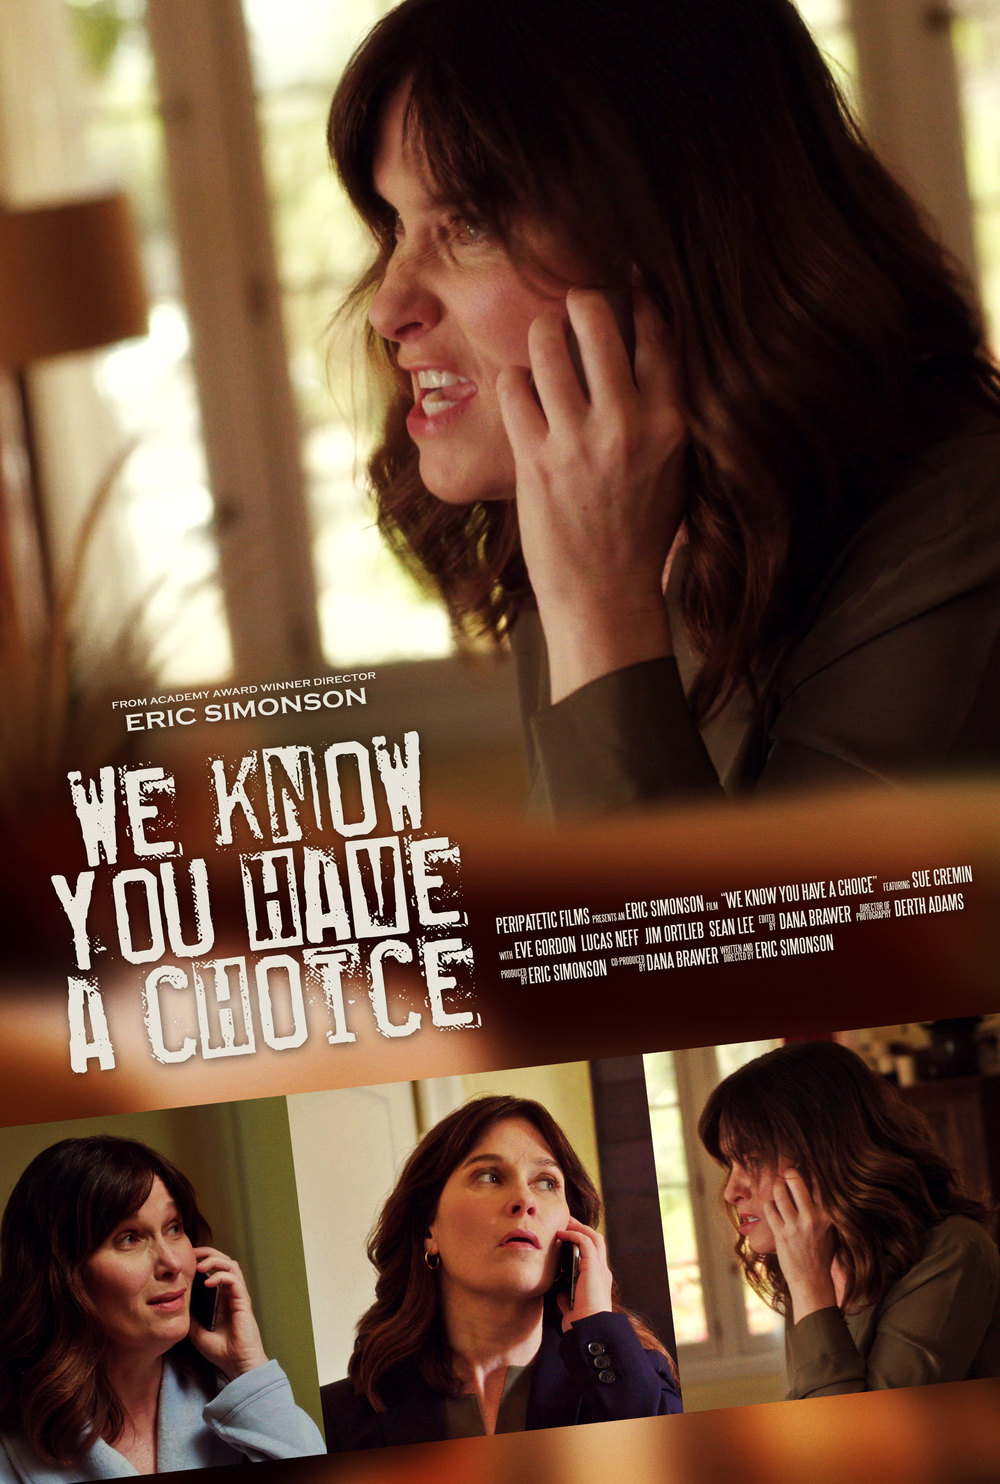 eric-simonson-director-we-know-choice